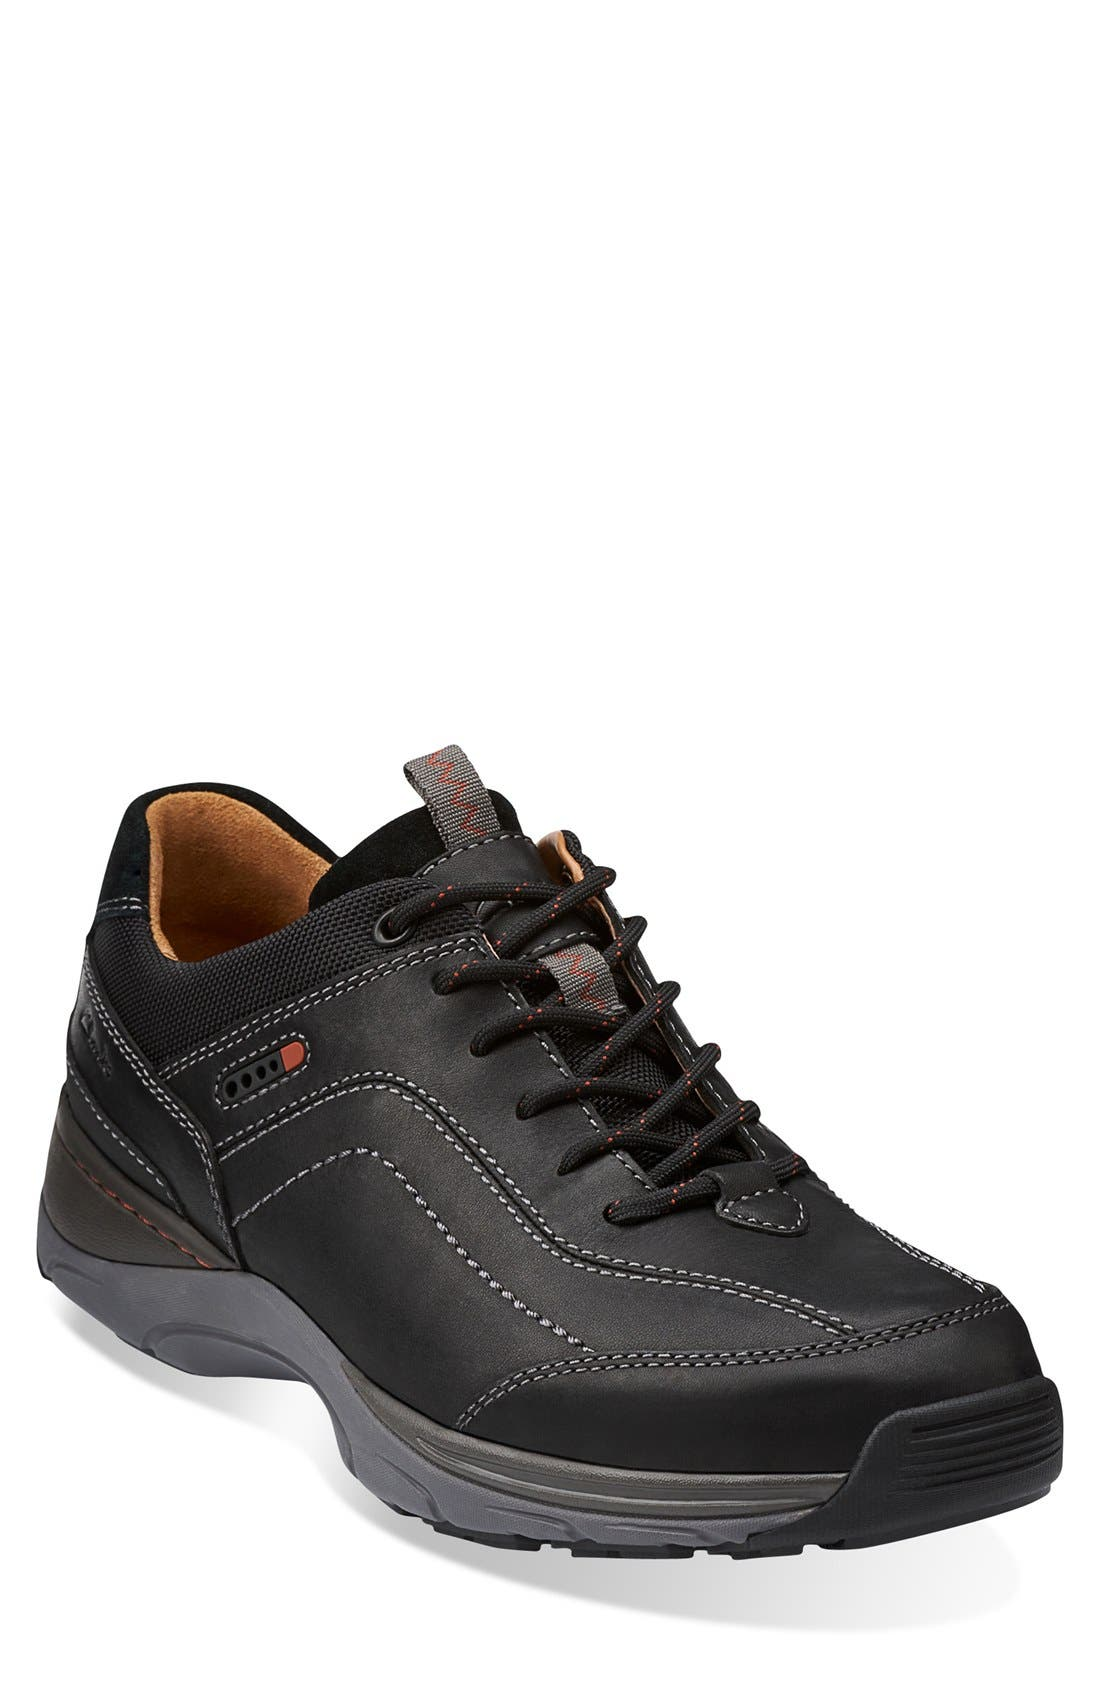 Clarks<sup>®</sup> 'Skyward Vibe' Sneaker, Main, color, 003